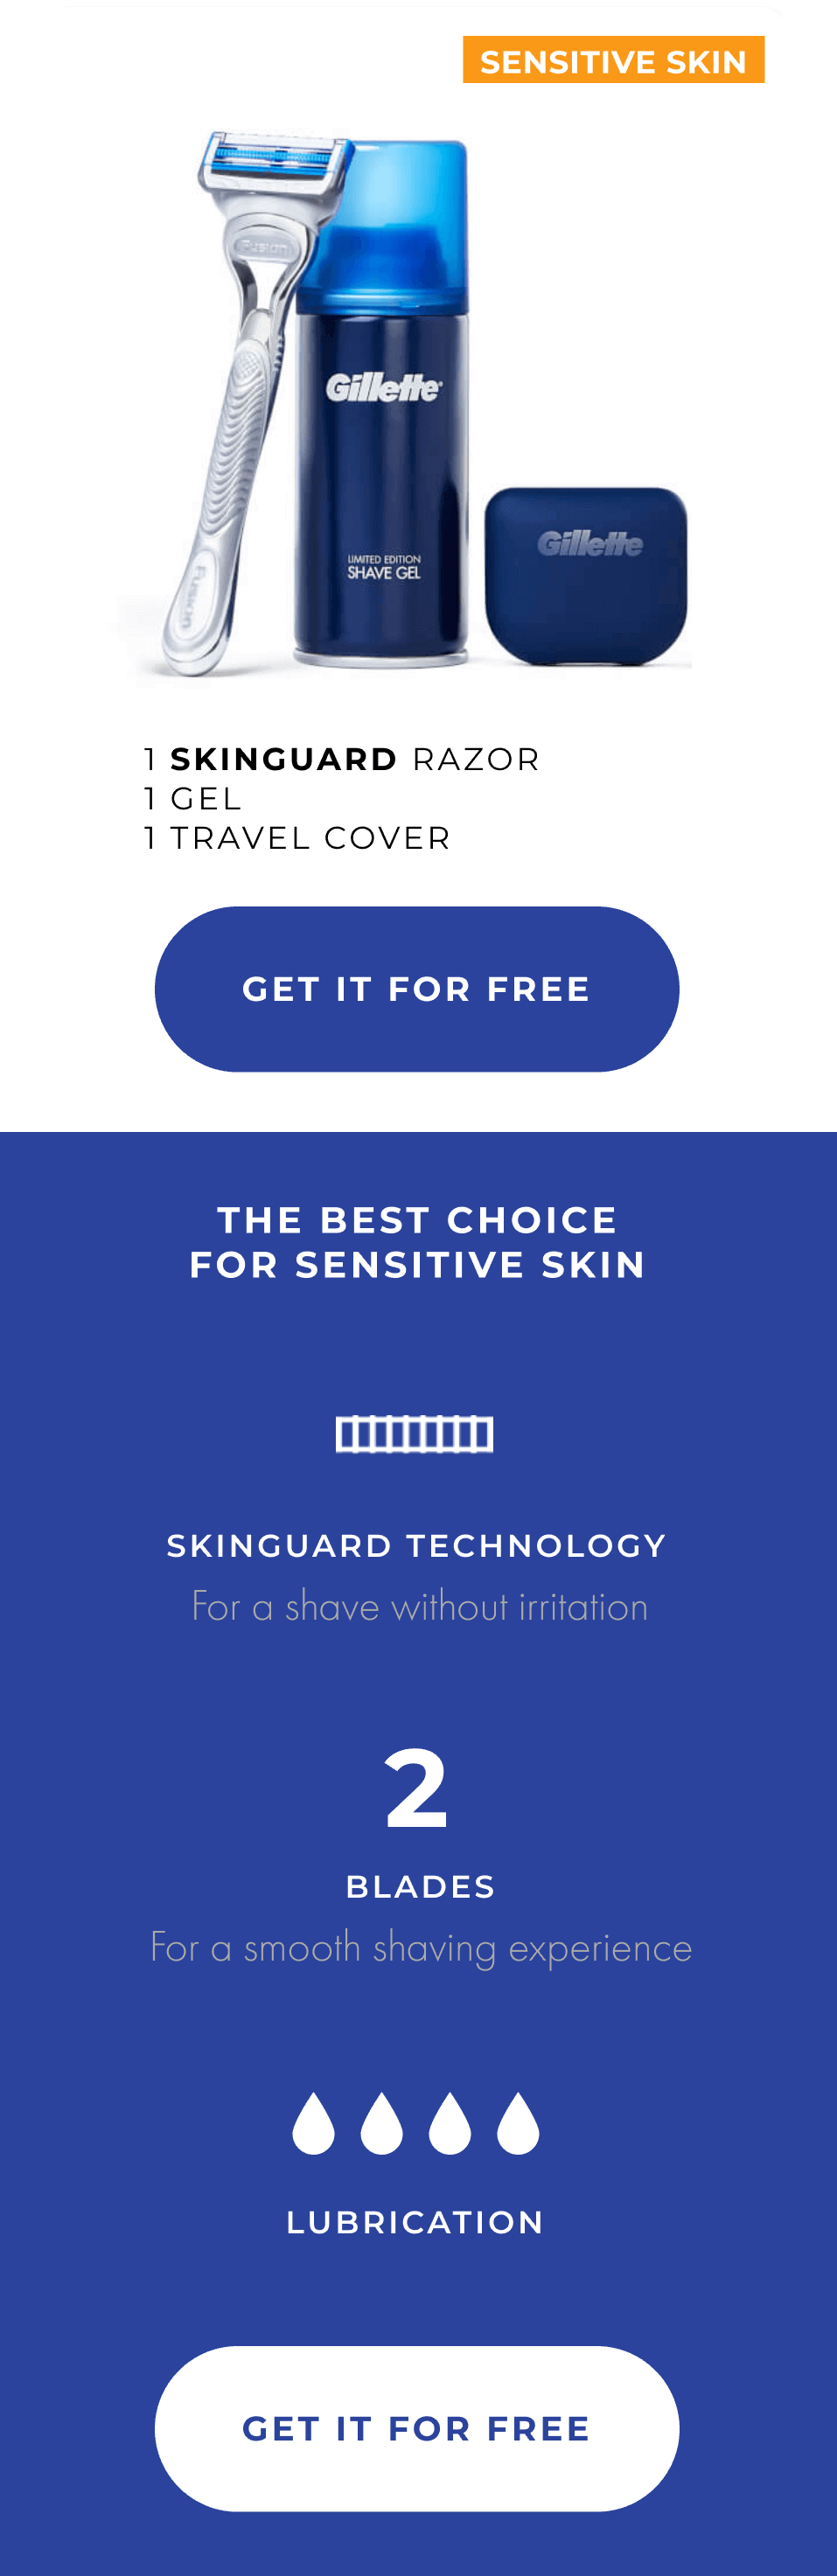 1 SKINGUARD RAZOR, 1 GEL, 1 TRAVEL COVER. THE BEST CHOICE FOR SENSITIVE SKIN. SKINGUARD TECHNOLOGY FOR SHAVING WITHOUT IRRITATION. 2 BLADES FOR A SMOOTH SAVING EXPERIENCE. 4 LUBRICATION.